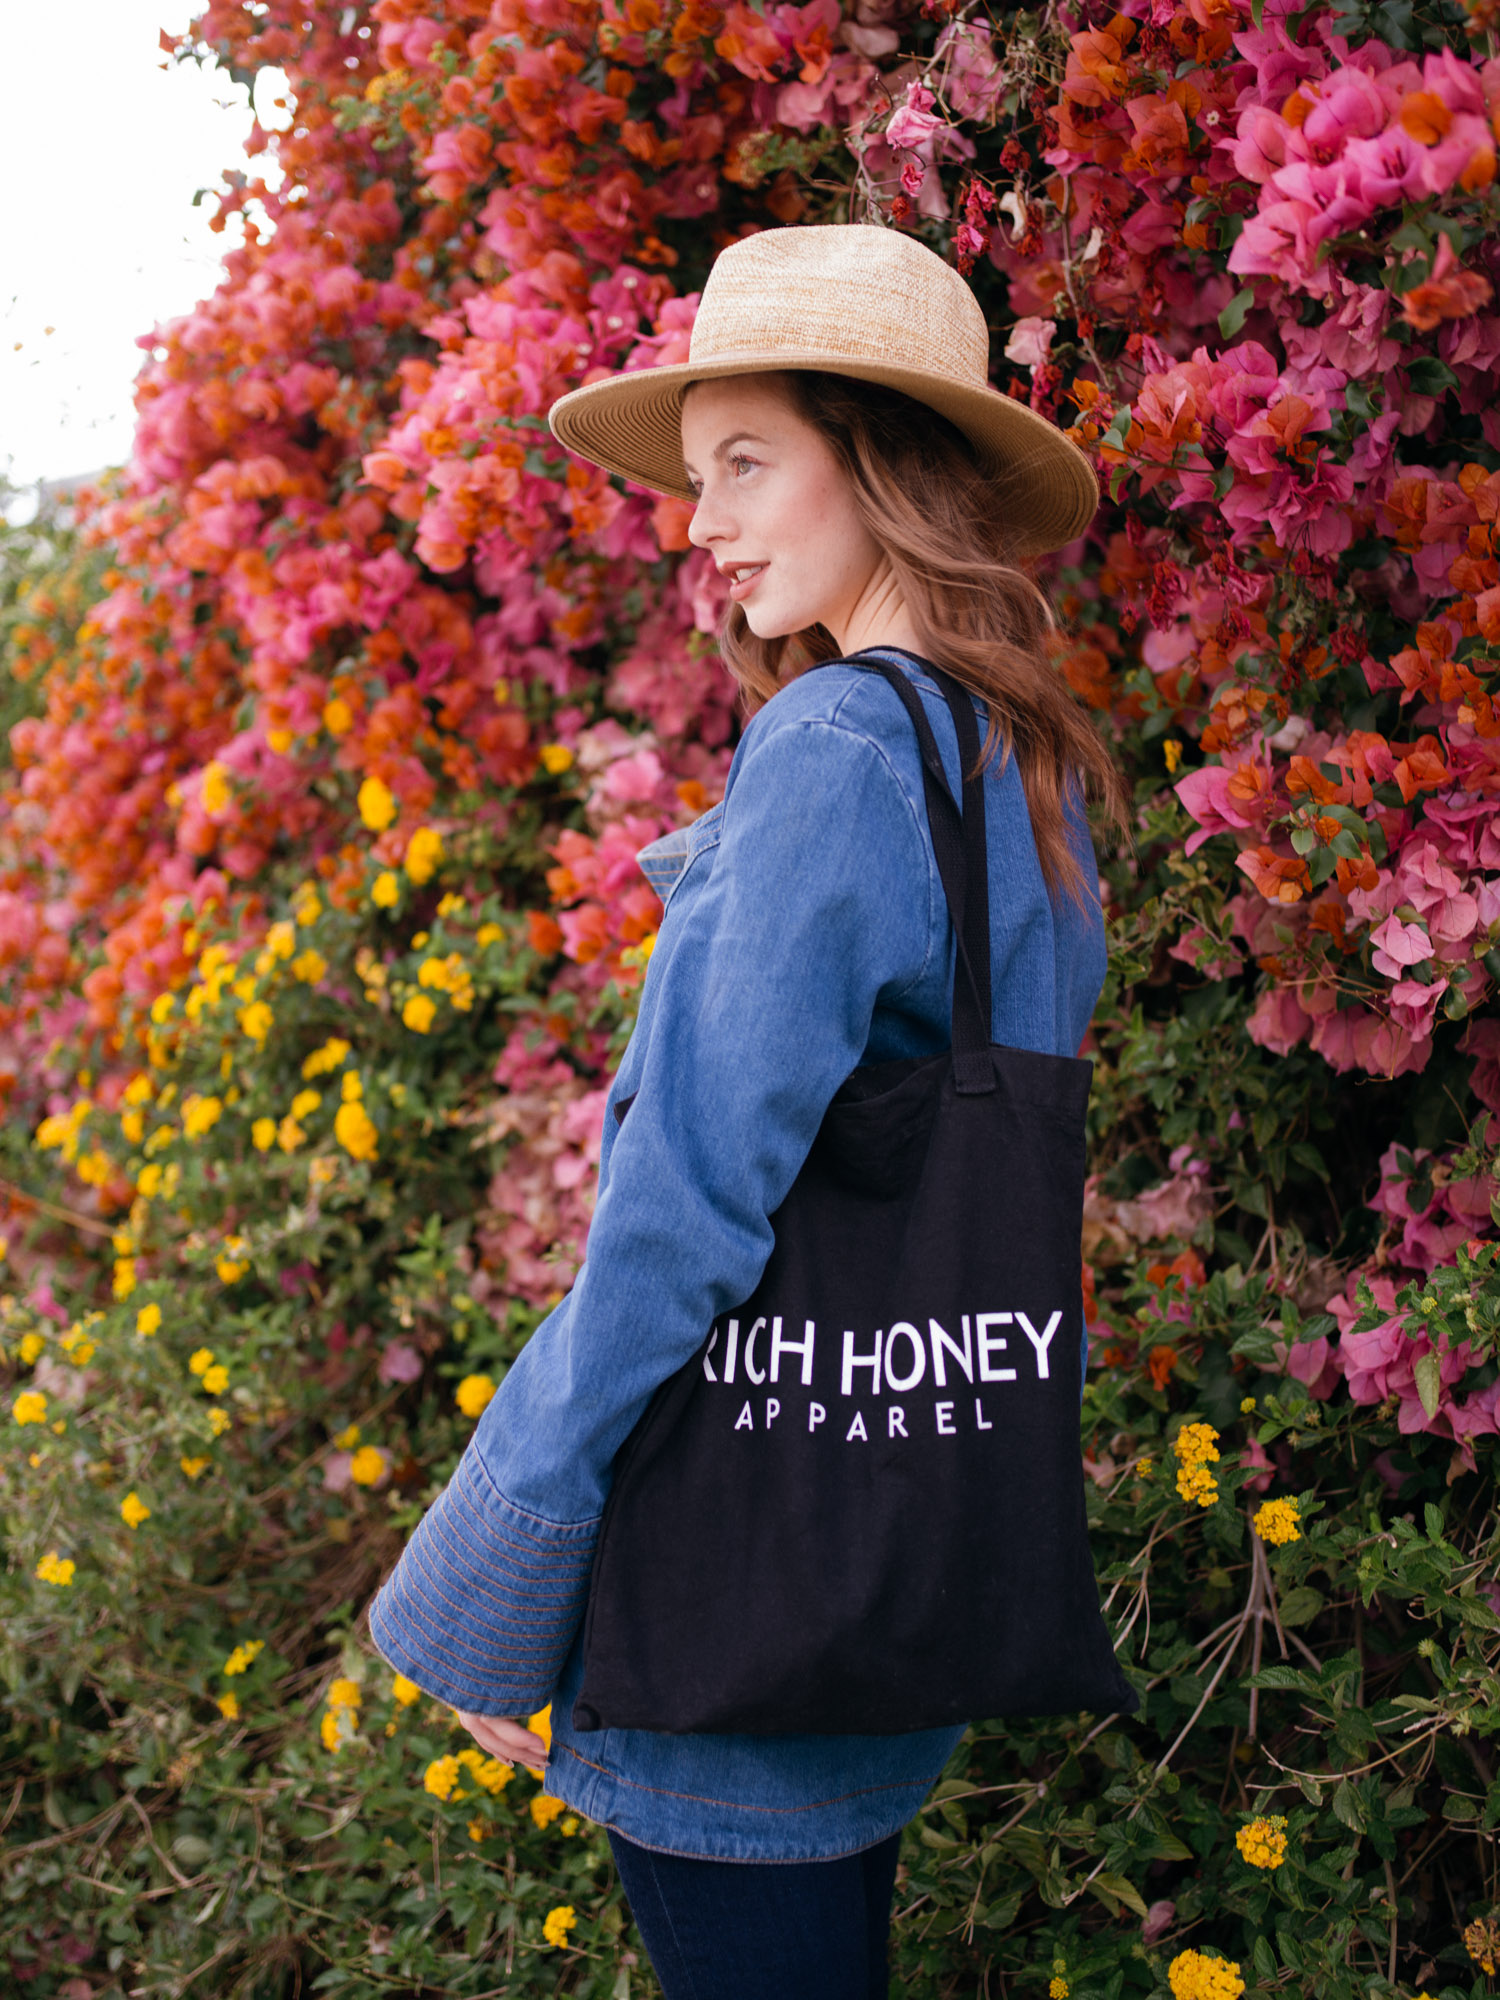 denim, made in la, denim on denim, platforms, flowers, farmers market, bell sleeves, free people, fashionista, lifestyle blogger, personal style, casual, chic, comfy, cuffed,